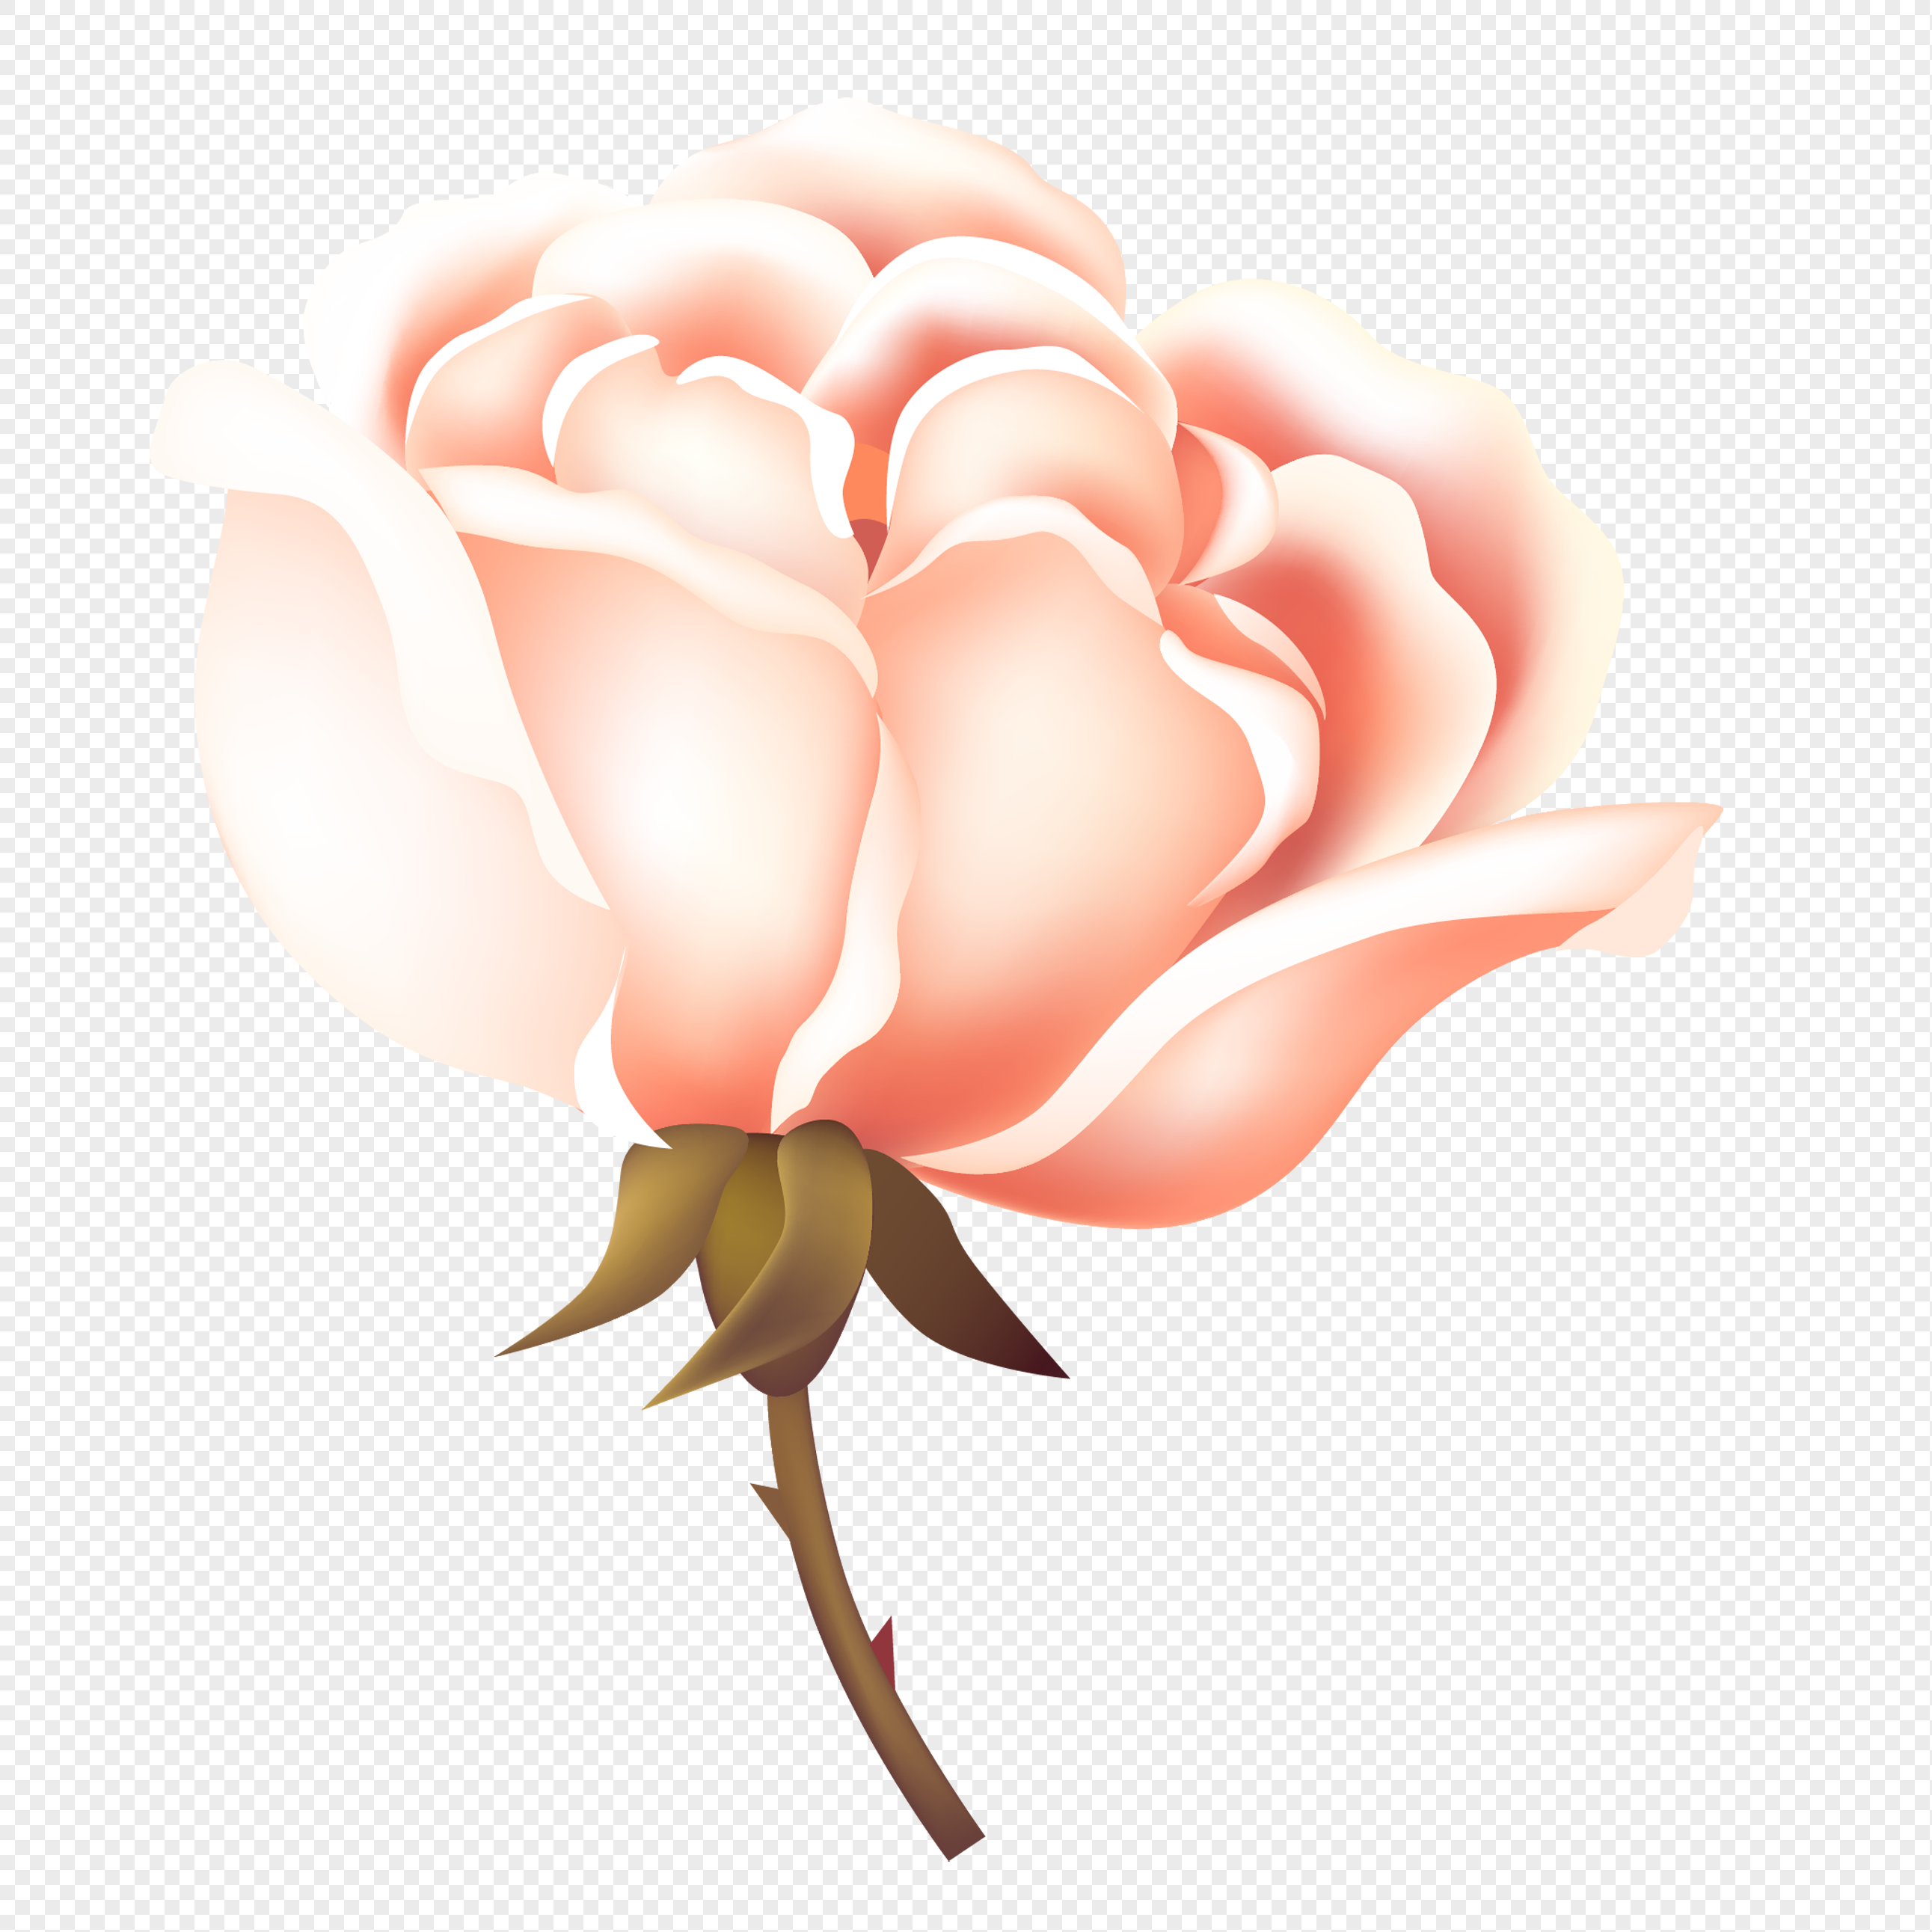 Pink Cartoon Flowers Png Imagepicture Free Download